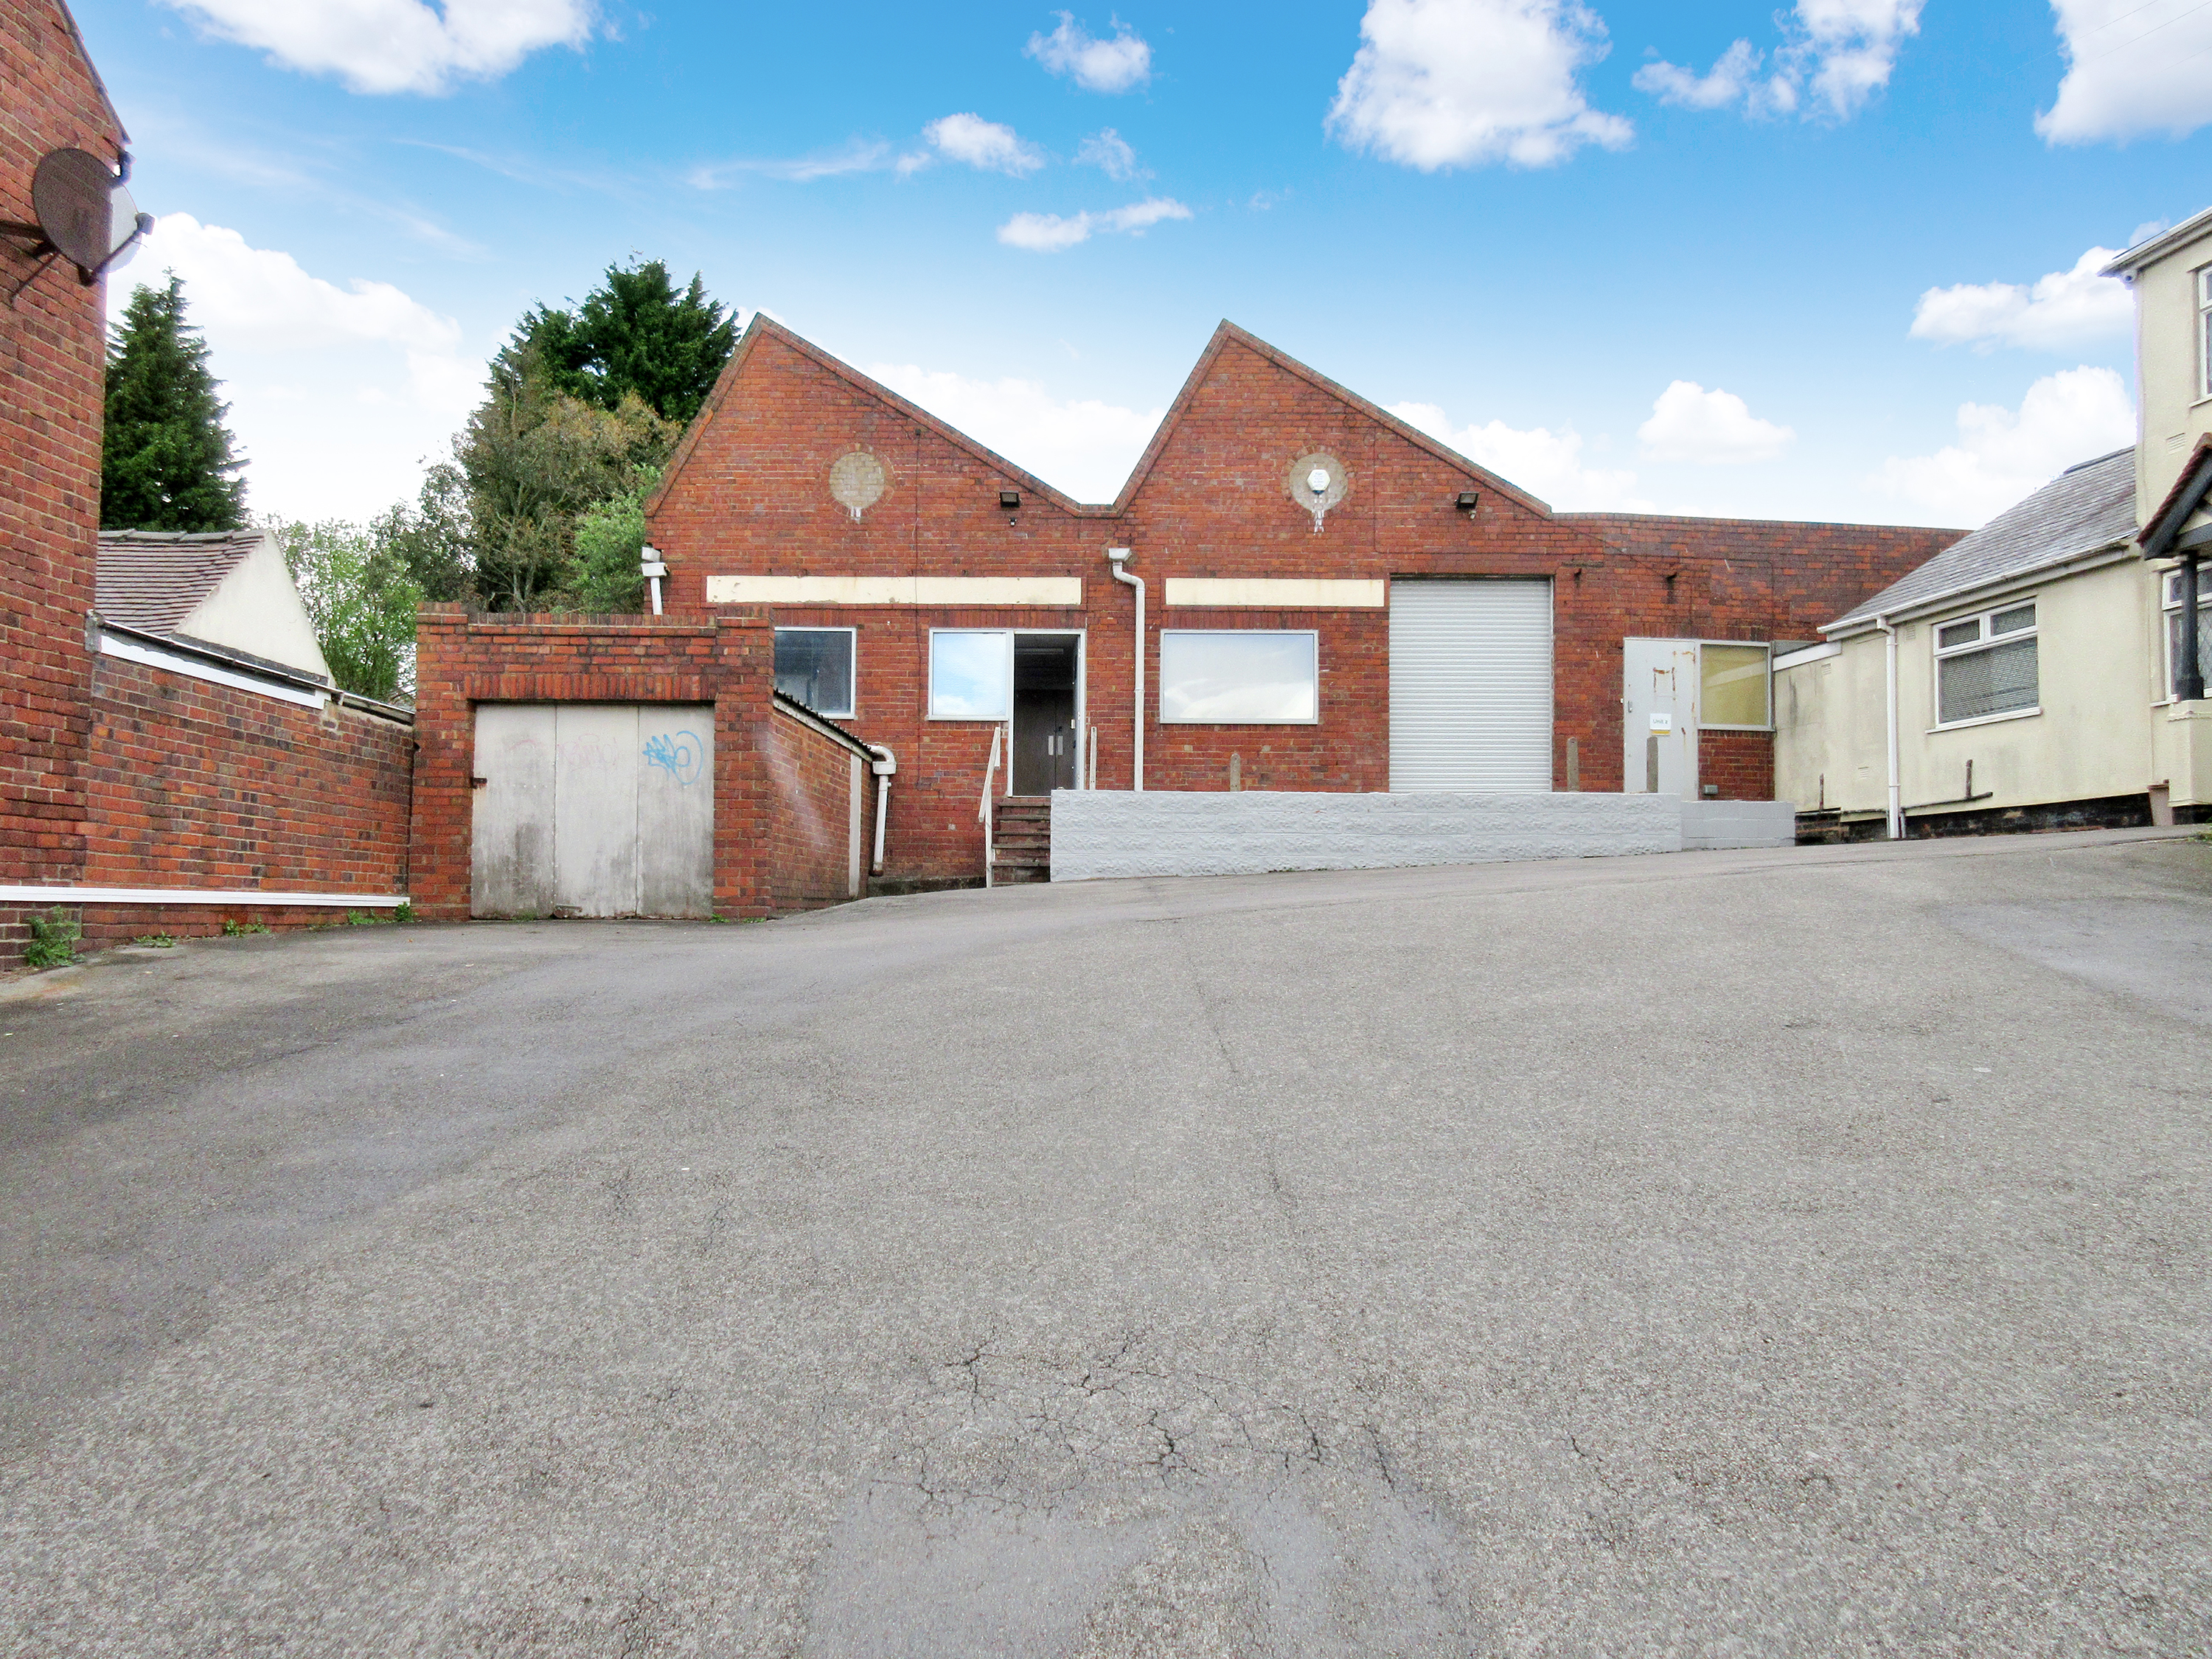 Unit 1, 153 Powke Lane Rowley Regis - Click for more details